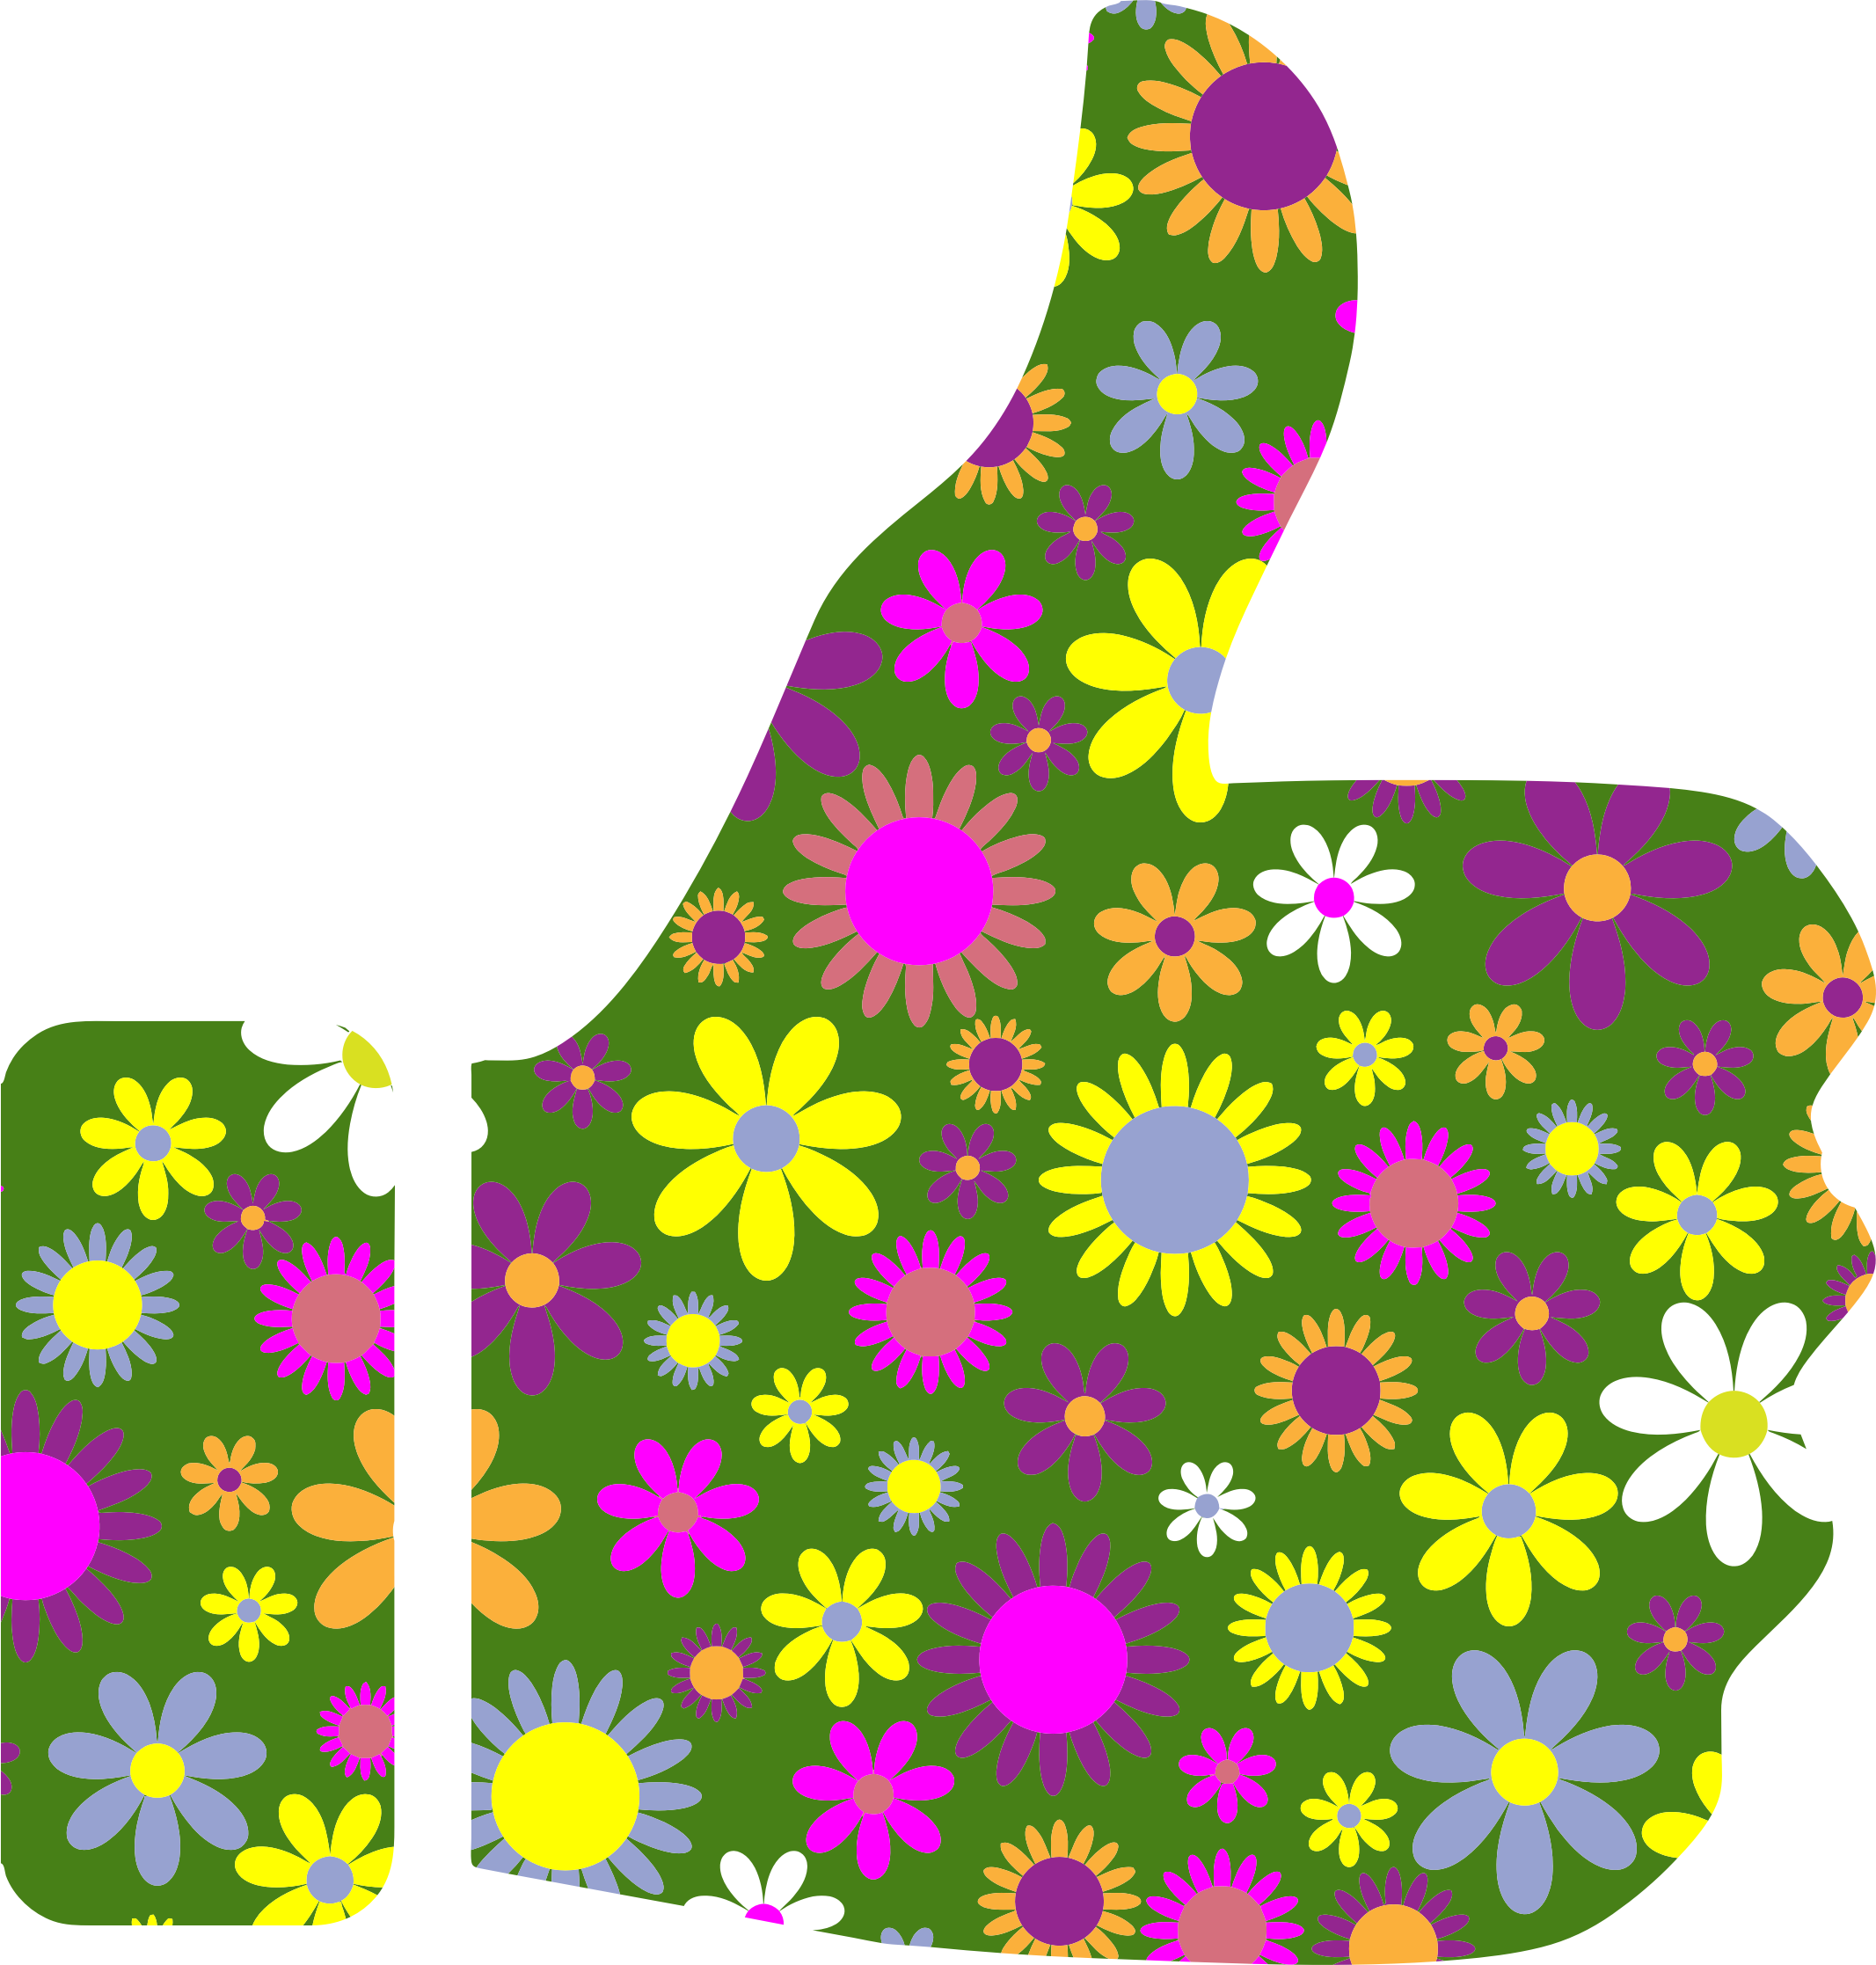 Clipart - Retro Floral Thumbs Up